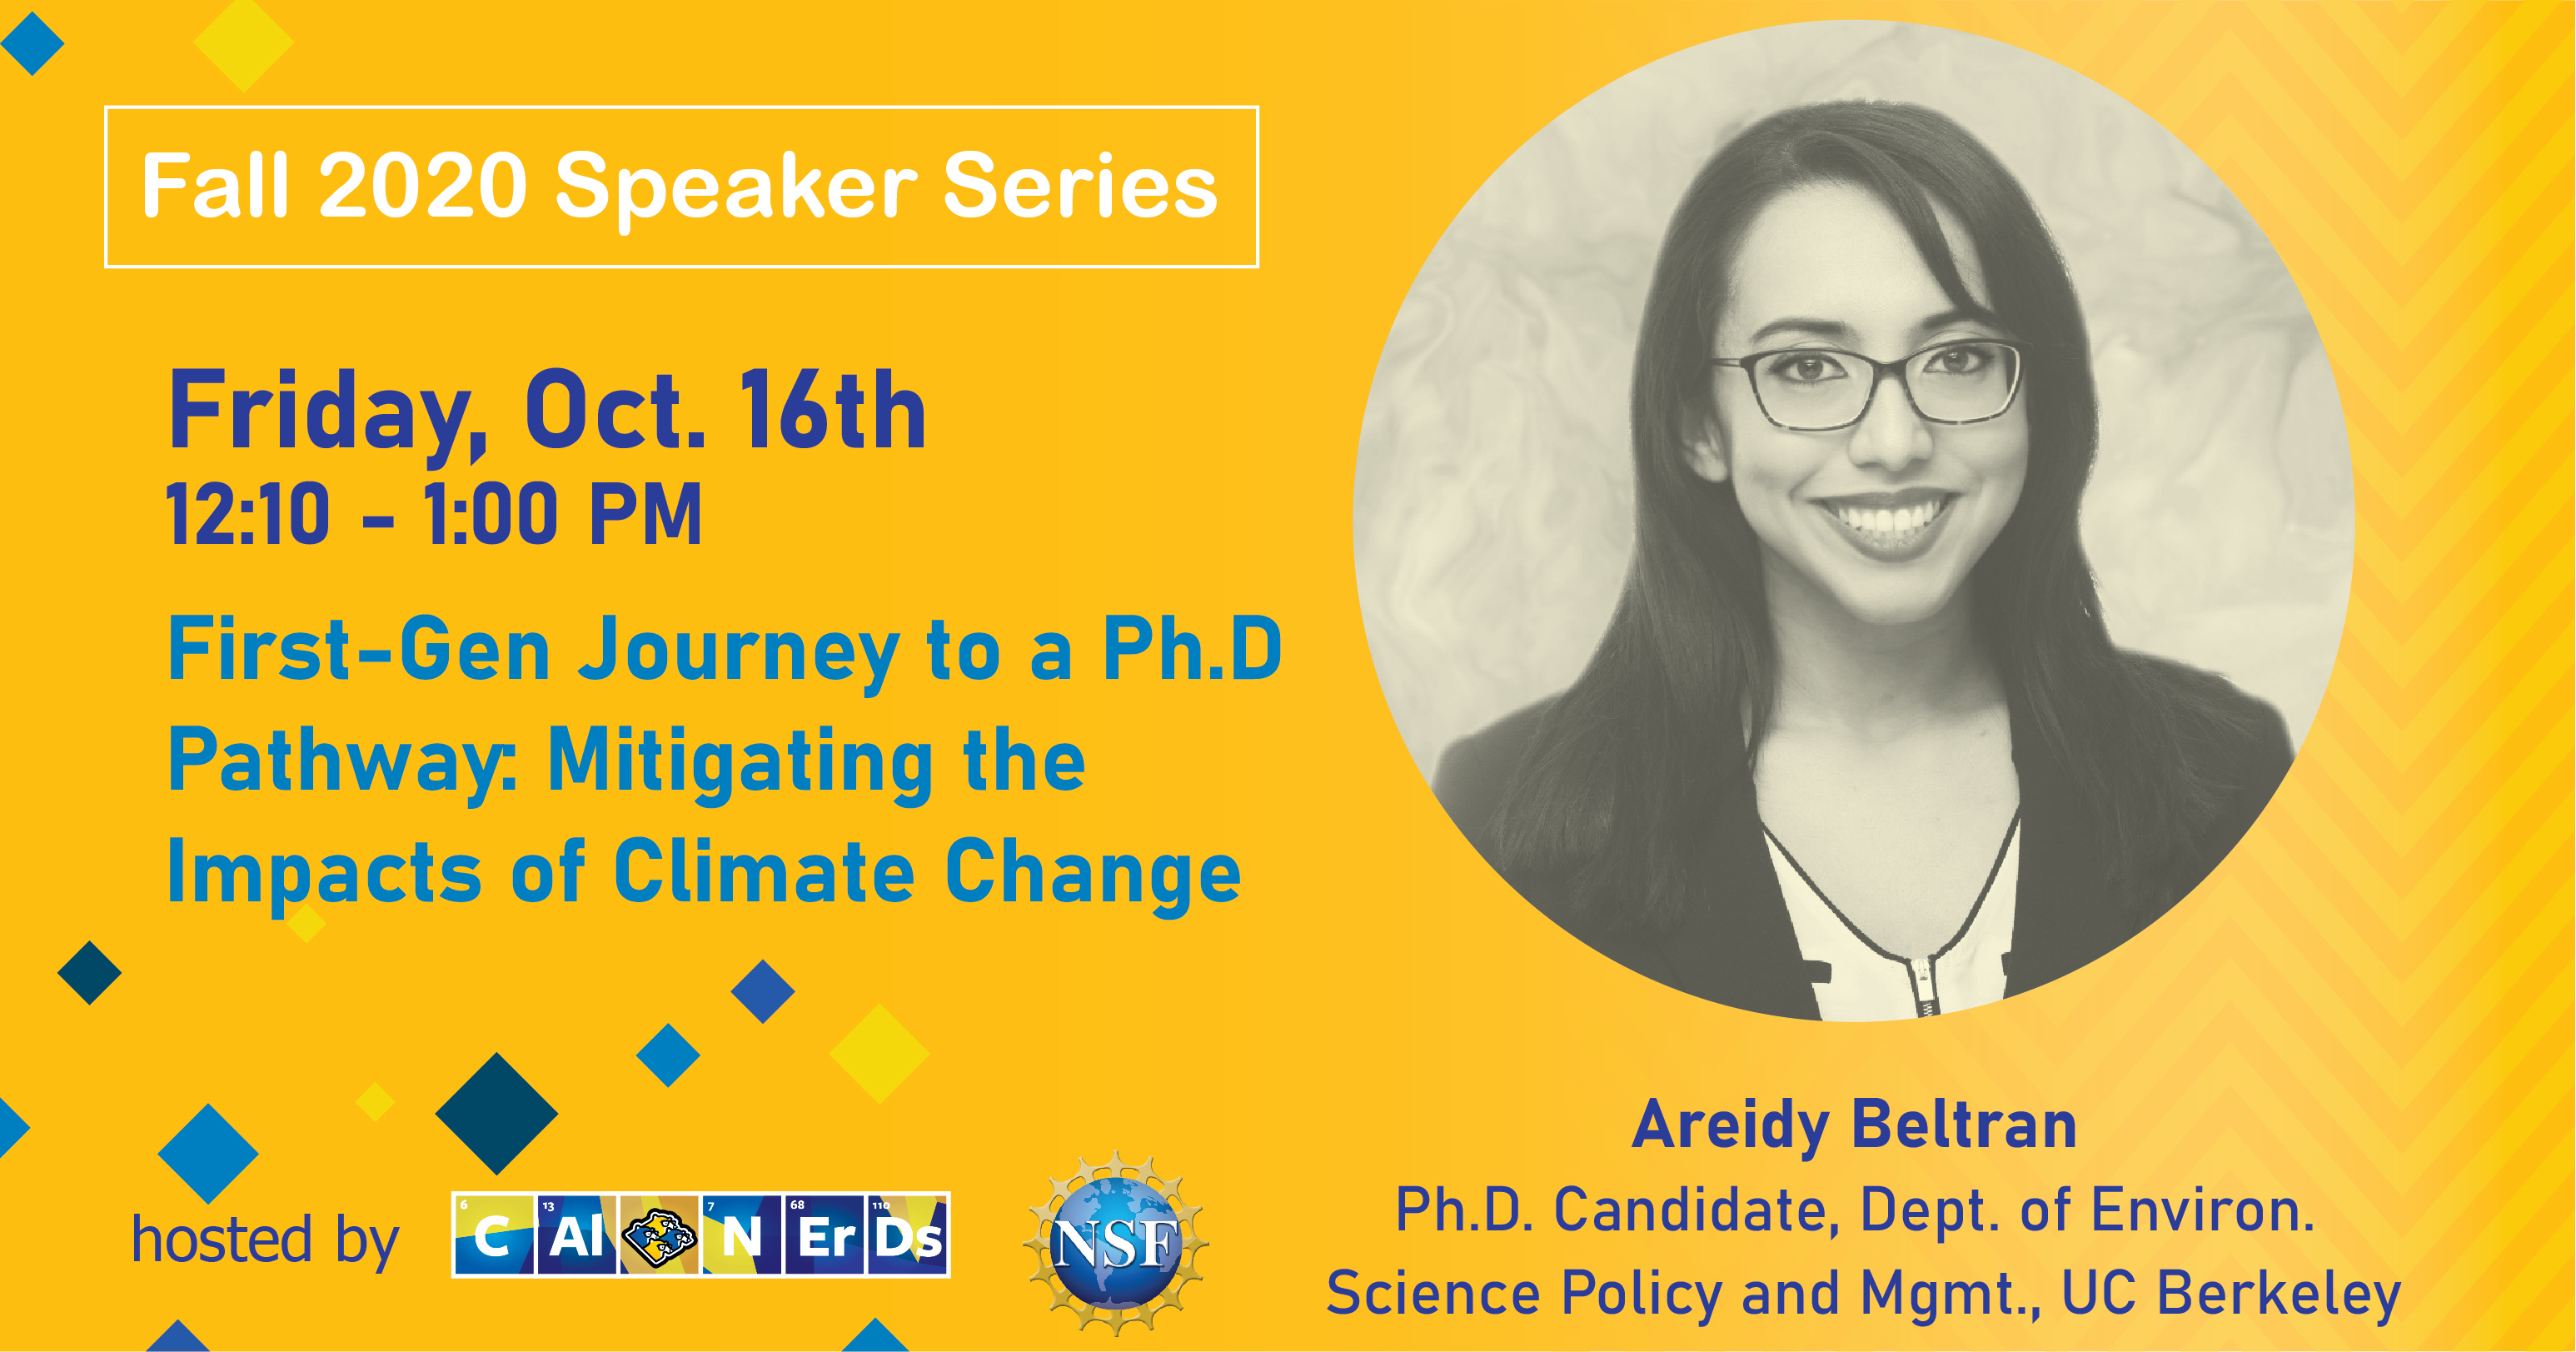 Cal NERDS Alum Areidy Returns to Give a Talk